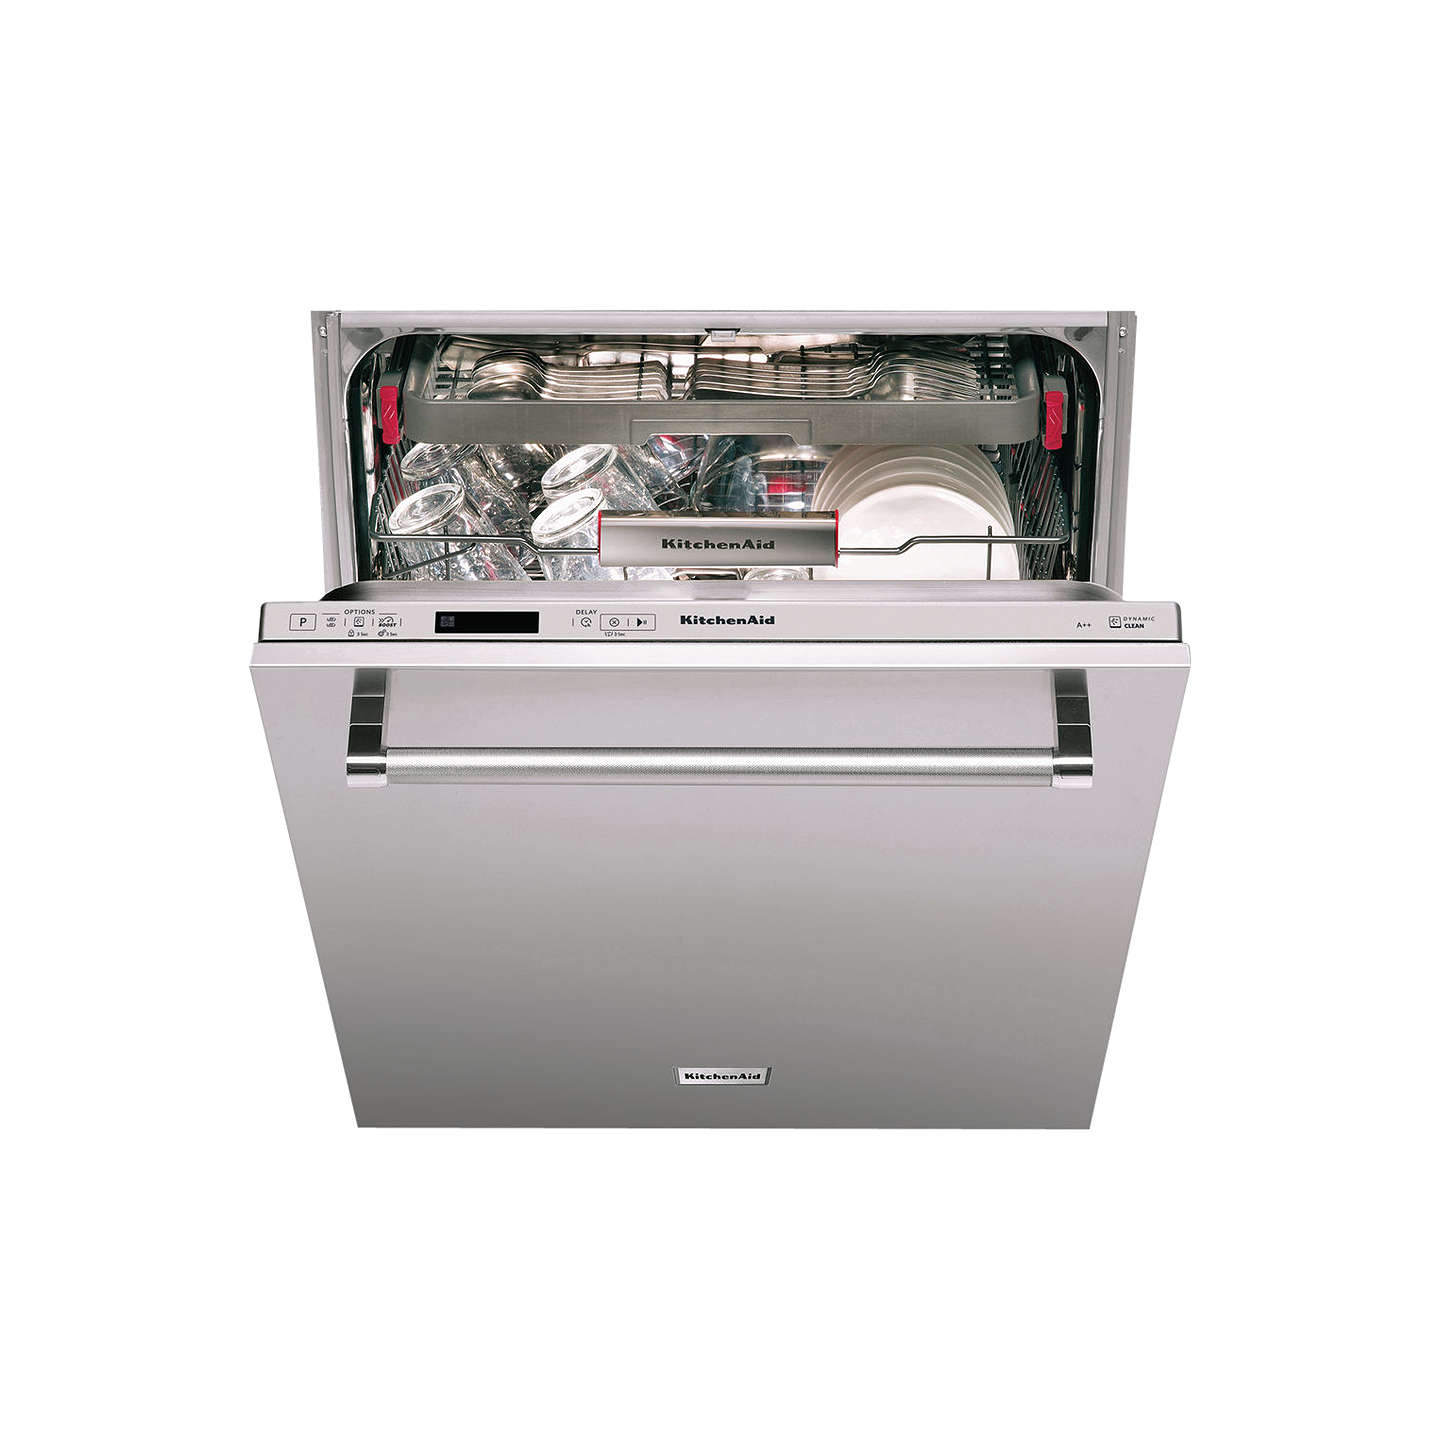 BuyKitchenaid KDSCM82140 Integrated Dishwasher Online at johnlewis.com